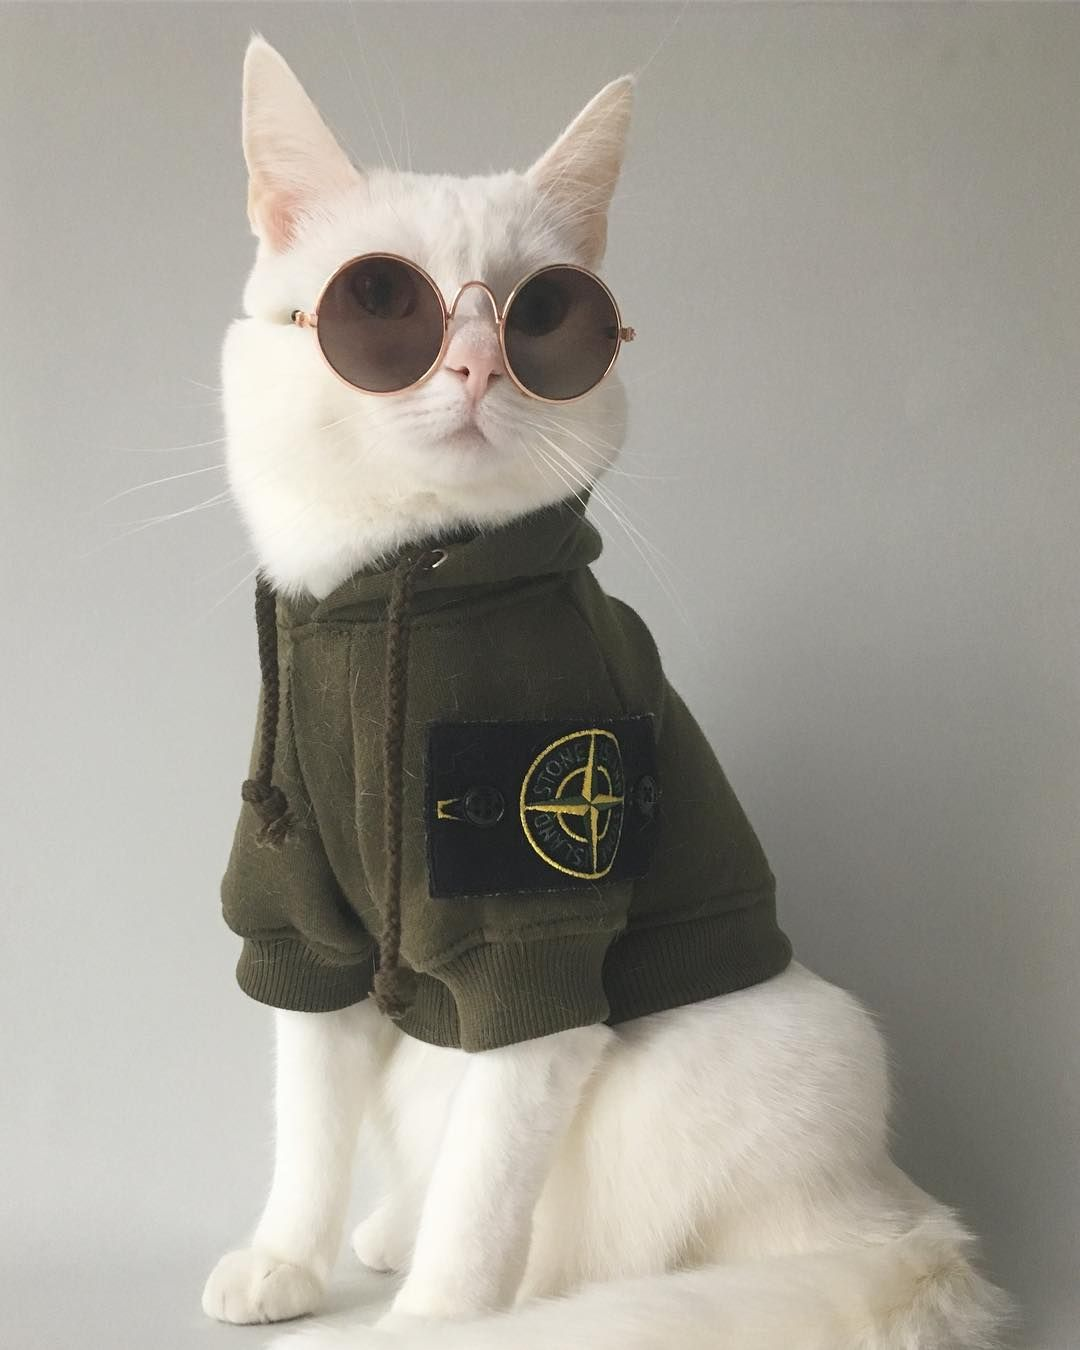 Zappa The Cat Fashion Is My Middle Name Cat Outfits Pets Cute Cats Cats